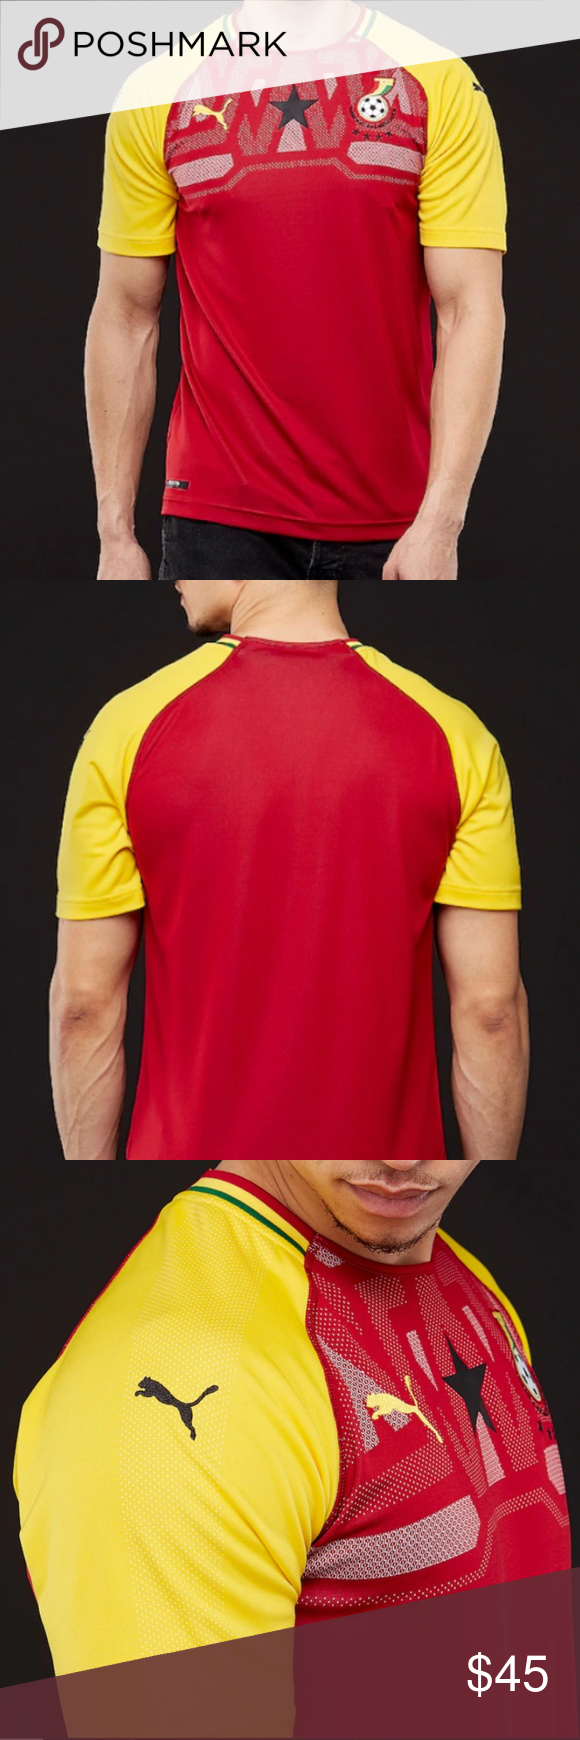 9113bc2fa Puma Men's GHANA Home Soccer Futbol Replica Jersey Represent your team with  the officially licensed Ghana